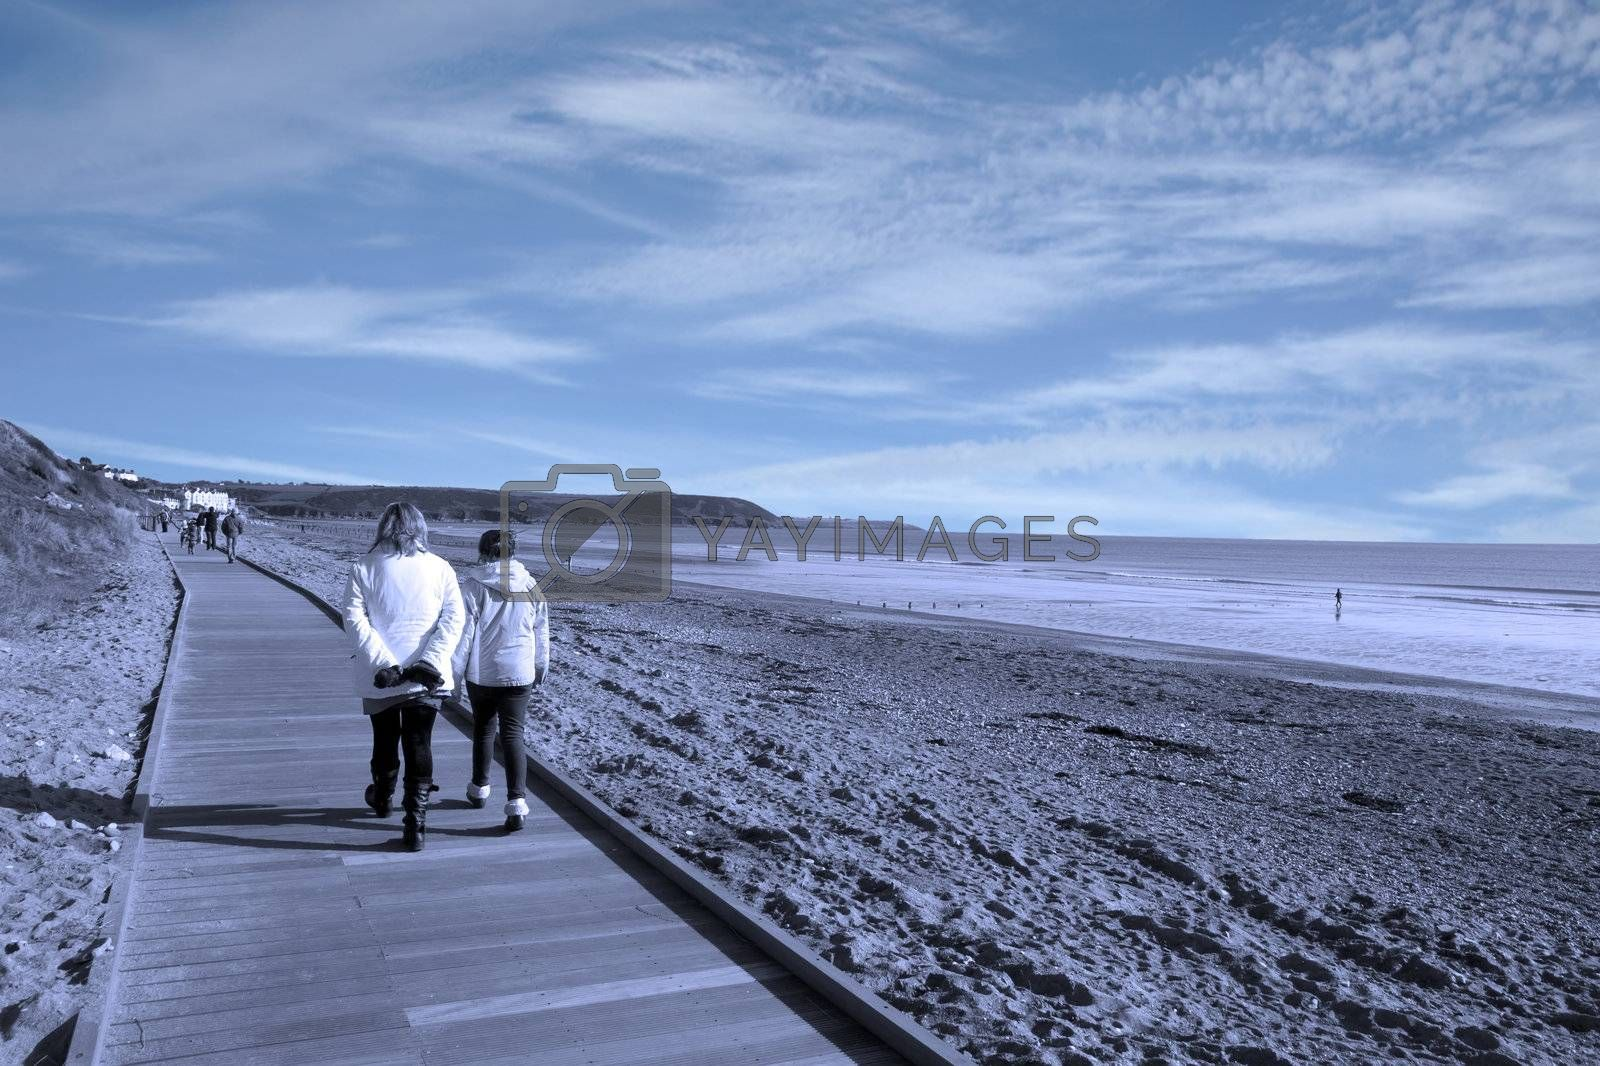 mother and daughter strolling along the beach boardwalk in Youghal county Cork Ireland